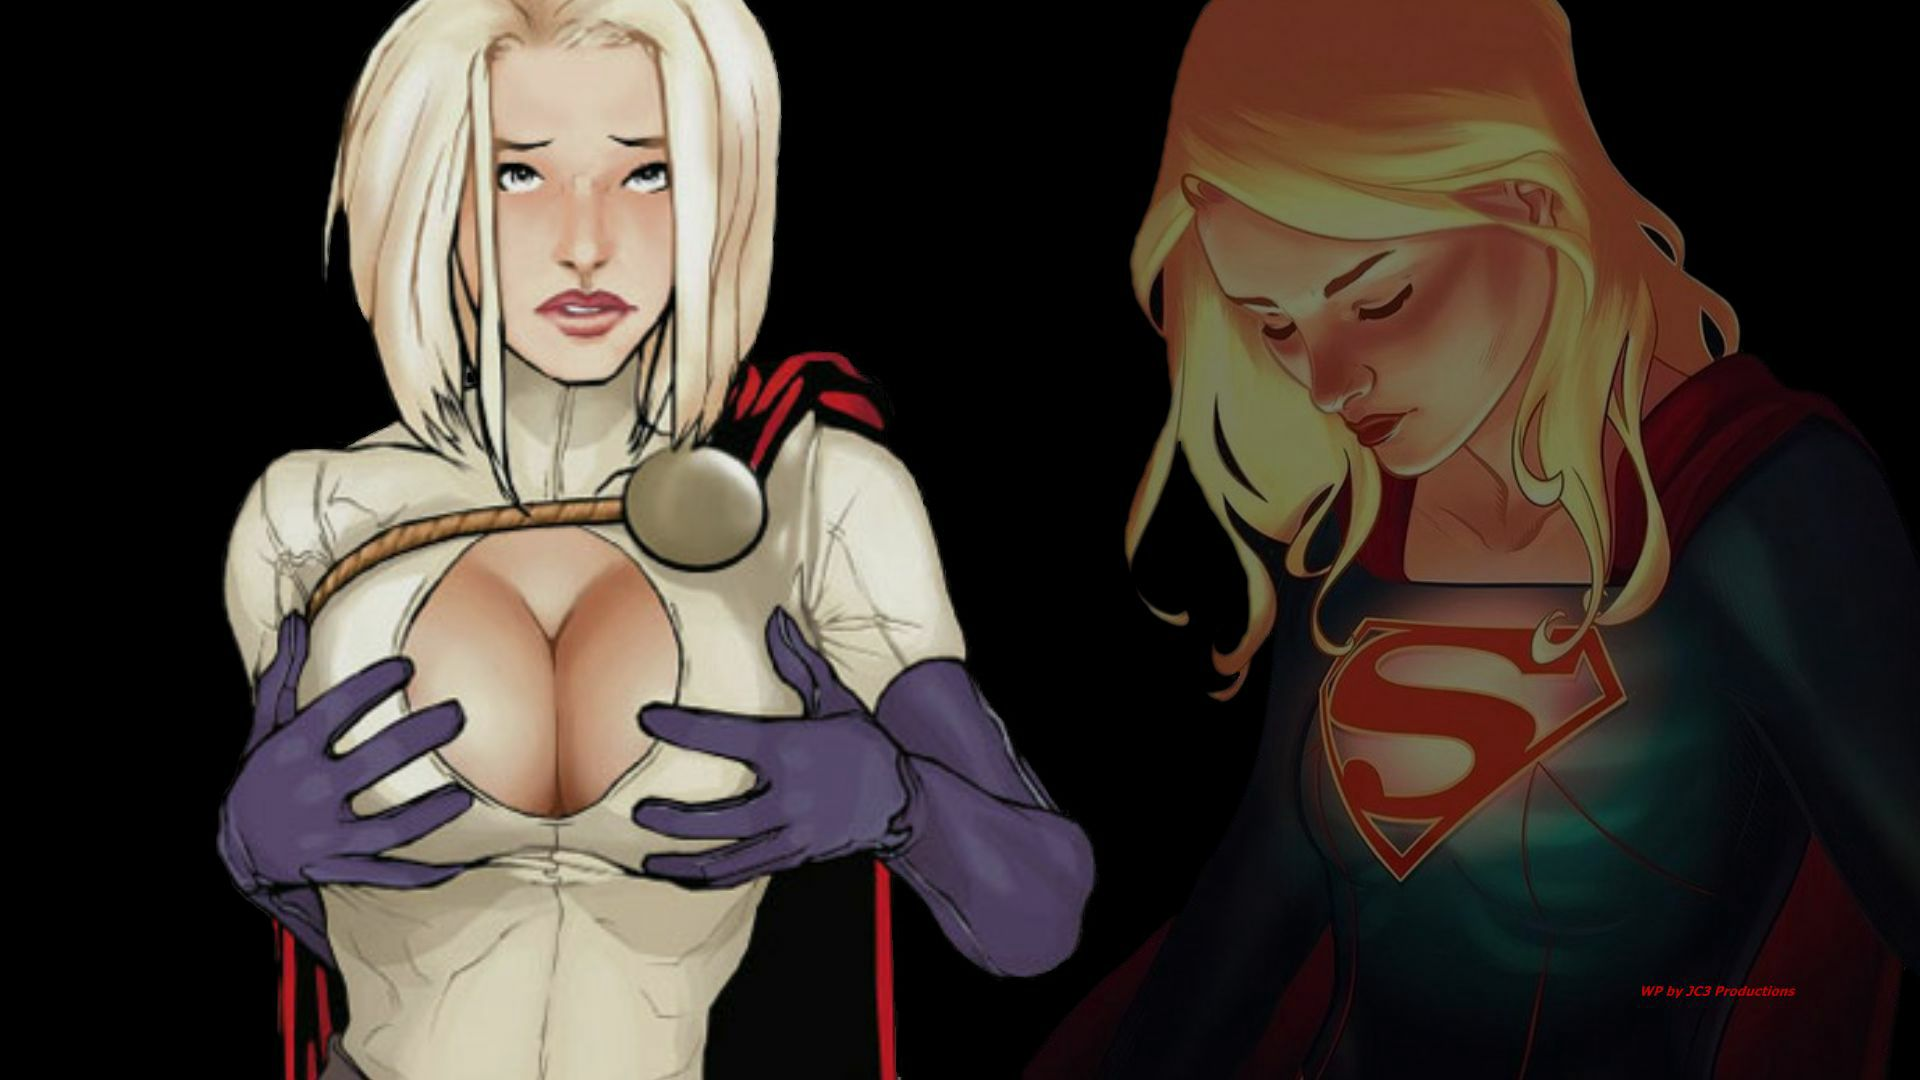 Power Girl vs Supergirl 1 wallpaper by Curtdawg53